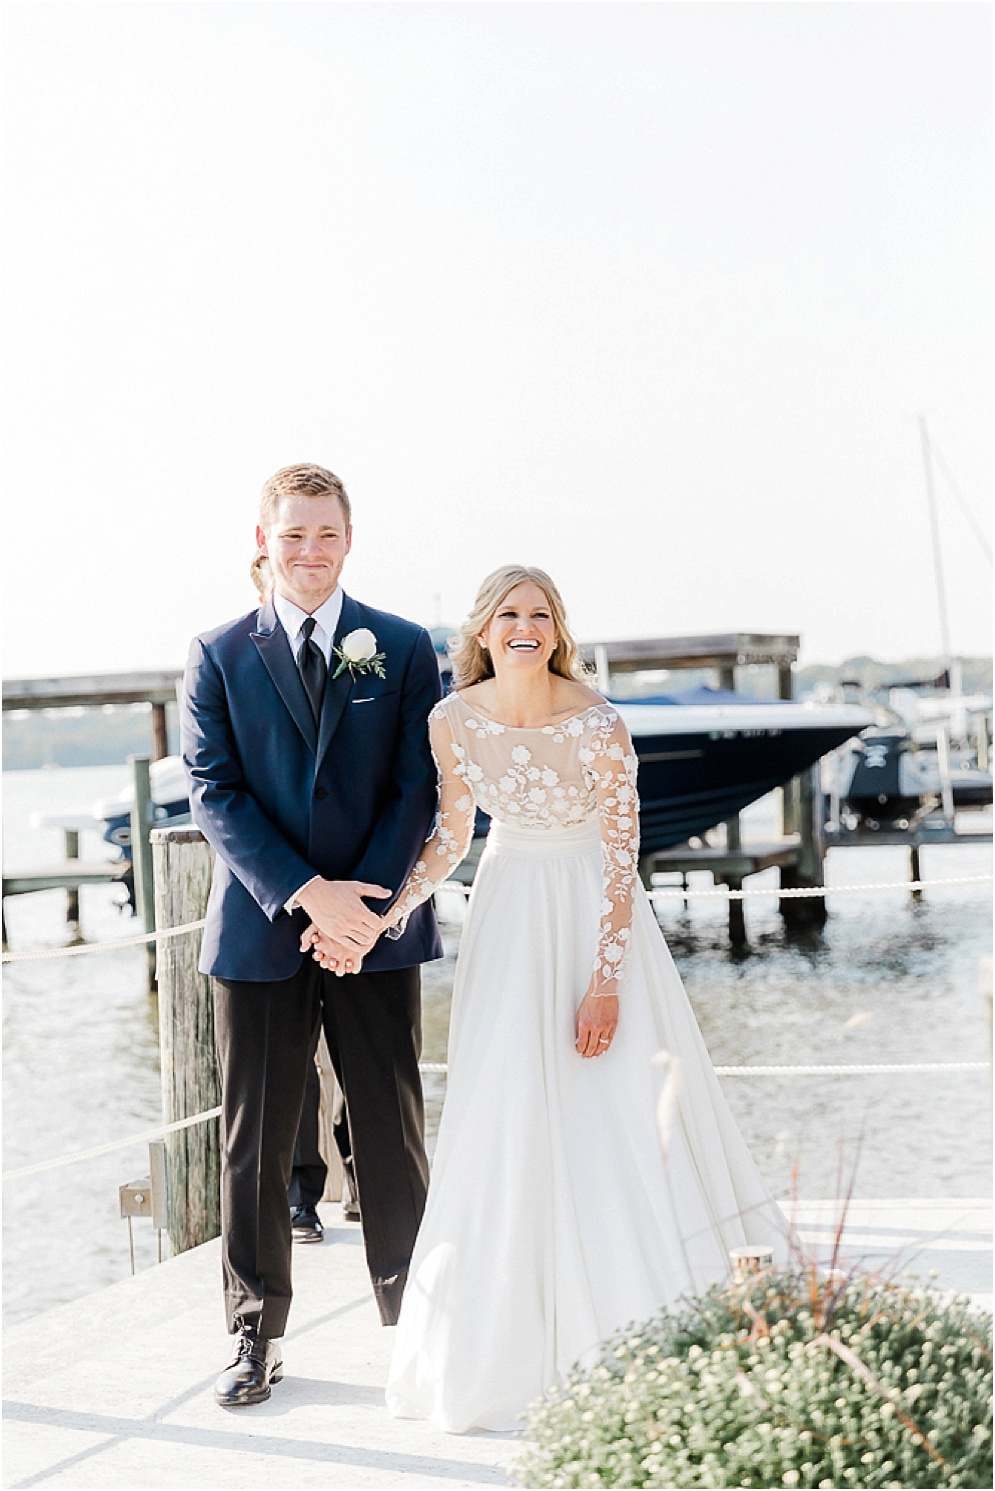 A playful Annapolis backyard wedding on the water featuring twinkle lights and greenery.